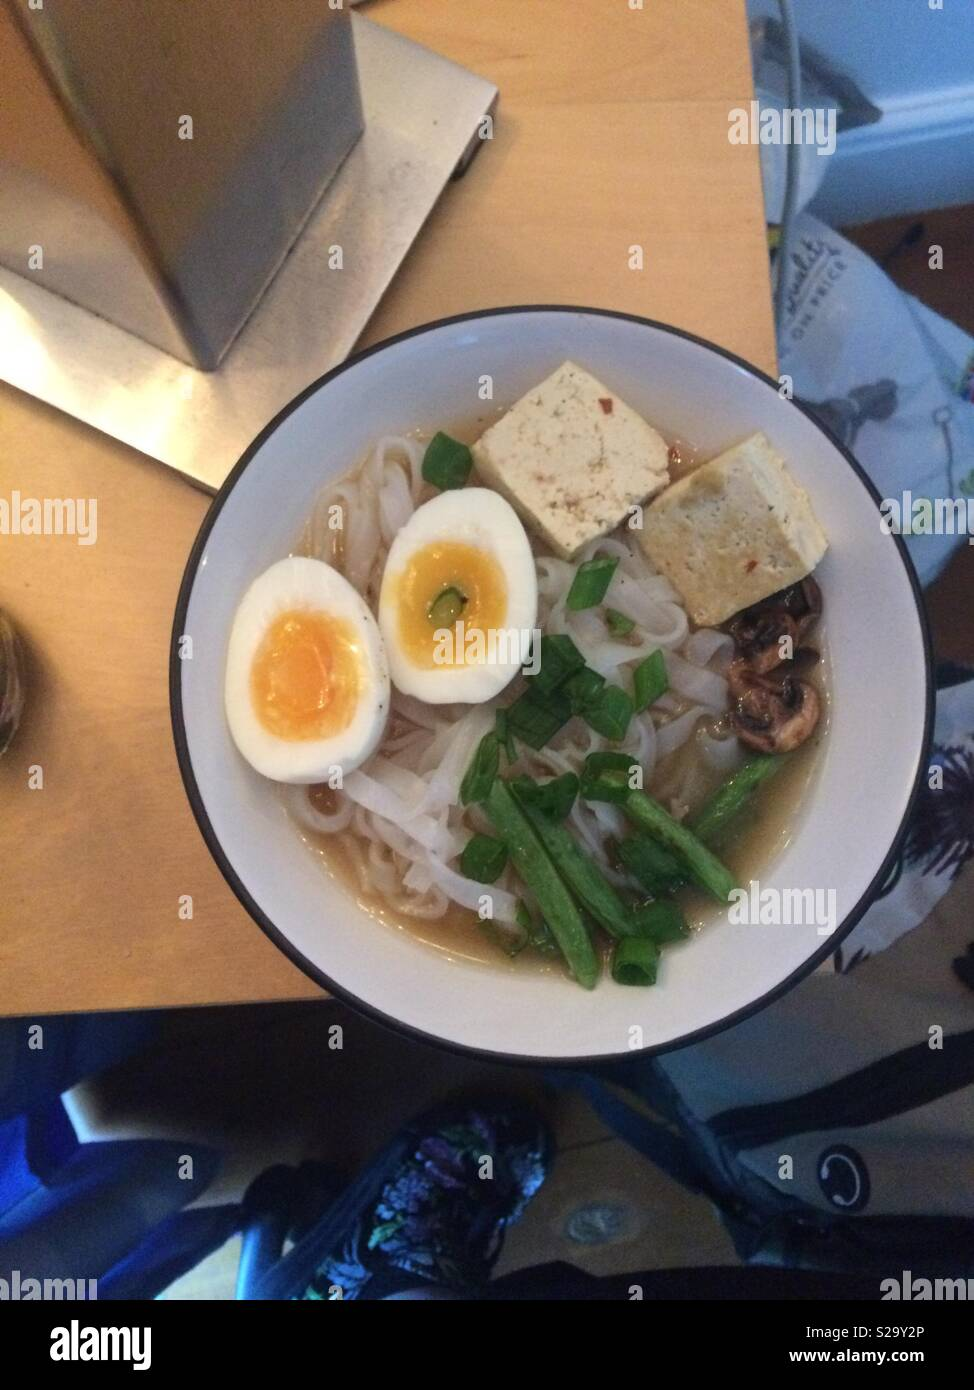 Homemade miso soup topped with tofu, rice noodles, greens, and a boiled egg. - Stock Image